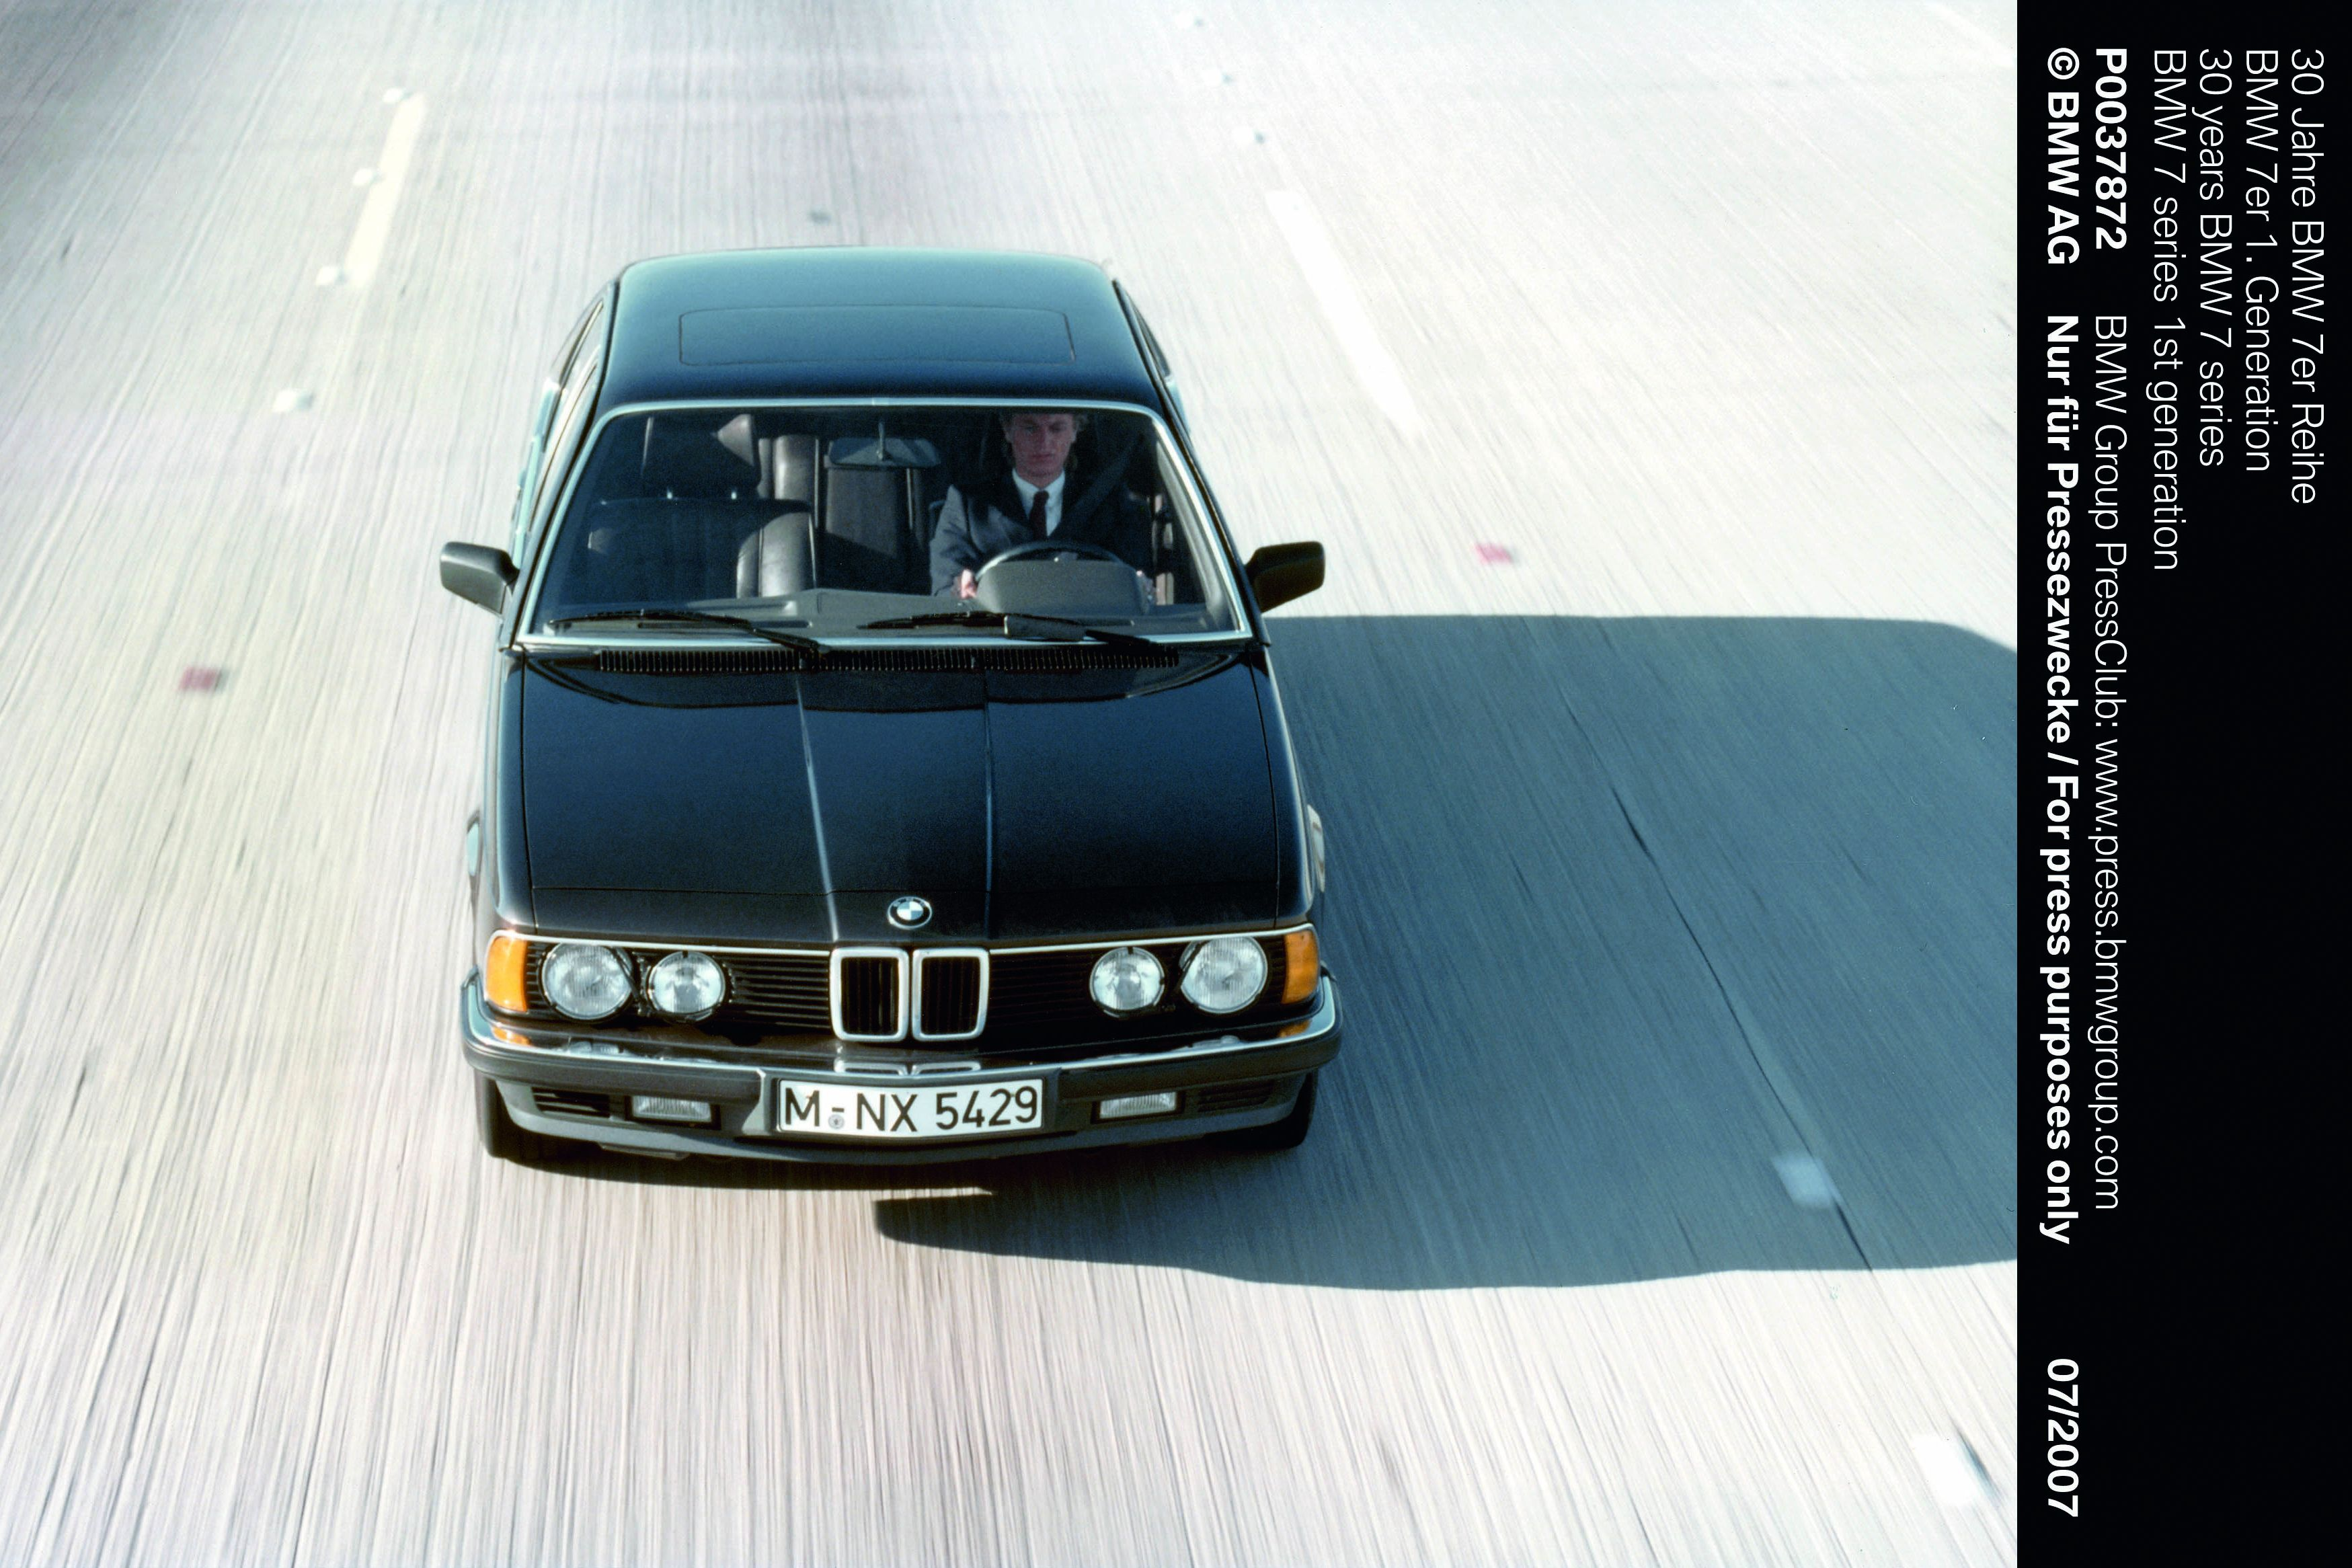 The adhesive Sikaflex was used for the windscreen of the BMW 7 series of the late 80's